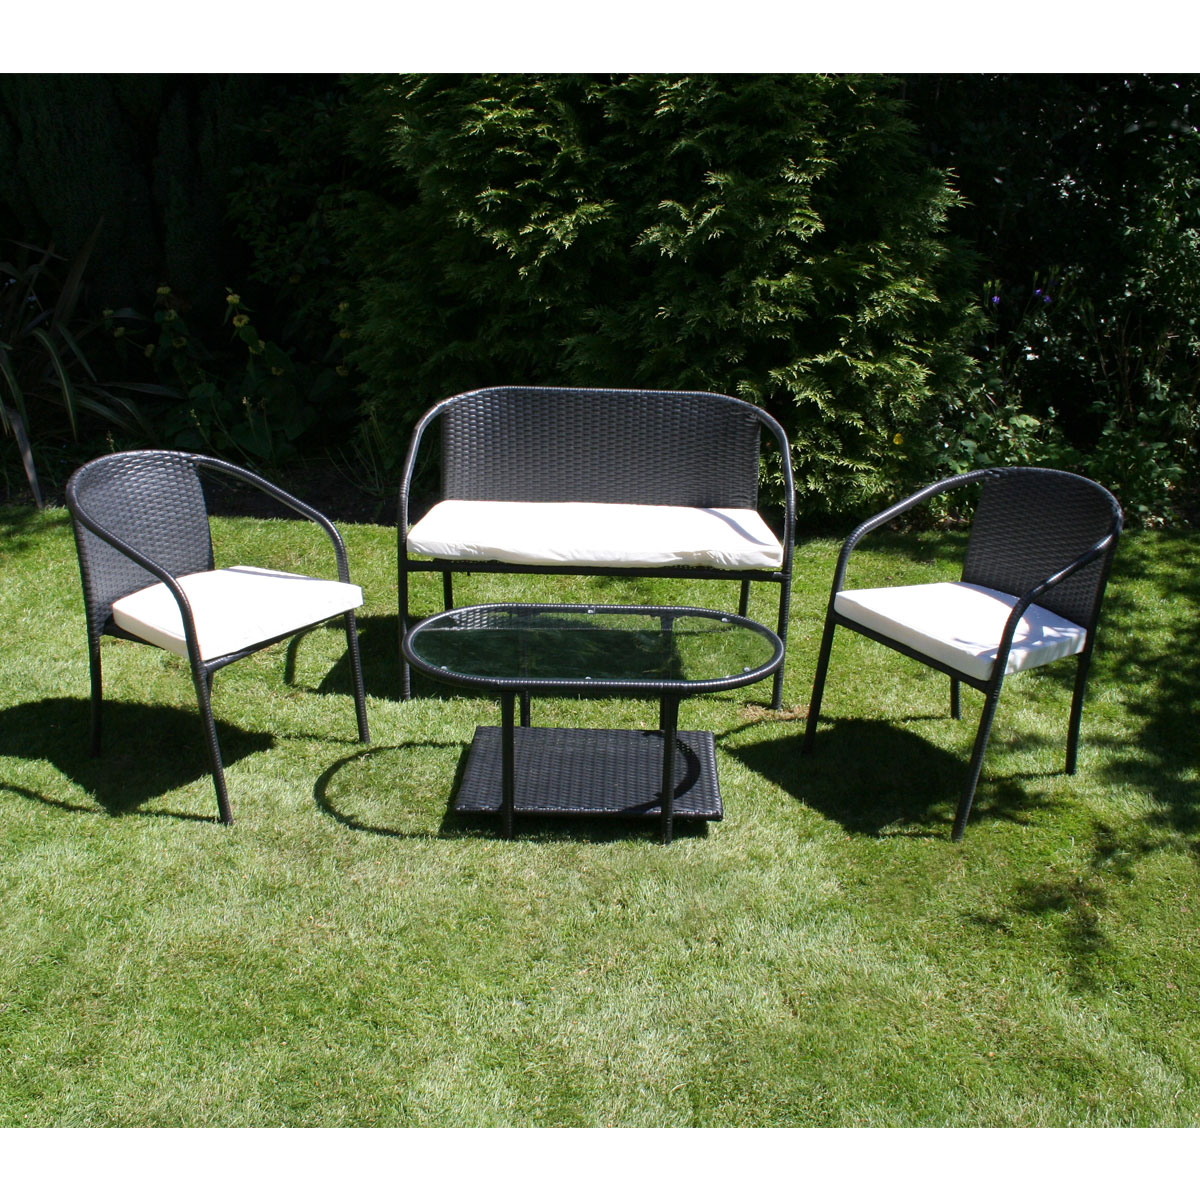 Charles Bentley Outdoor Patio 4 Piece Sofa Black Rattan